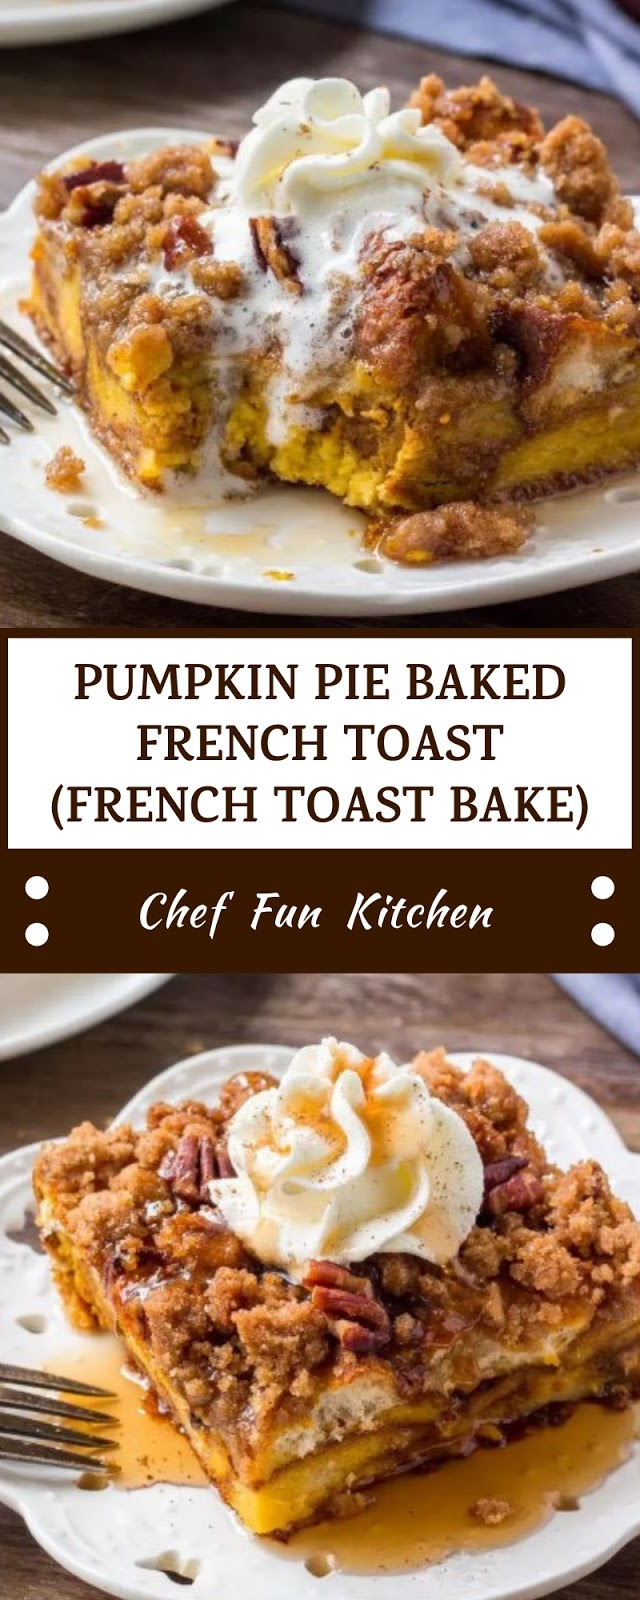 PUMPKIN PIE BAKED FRENCH TOAST (FRENCH TOAST BAKE)